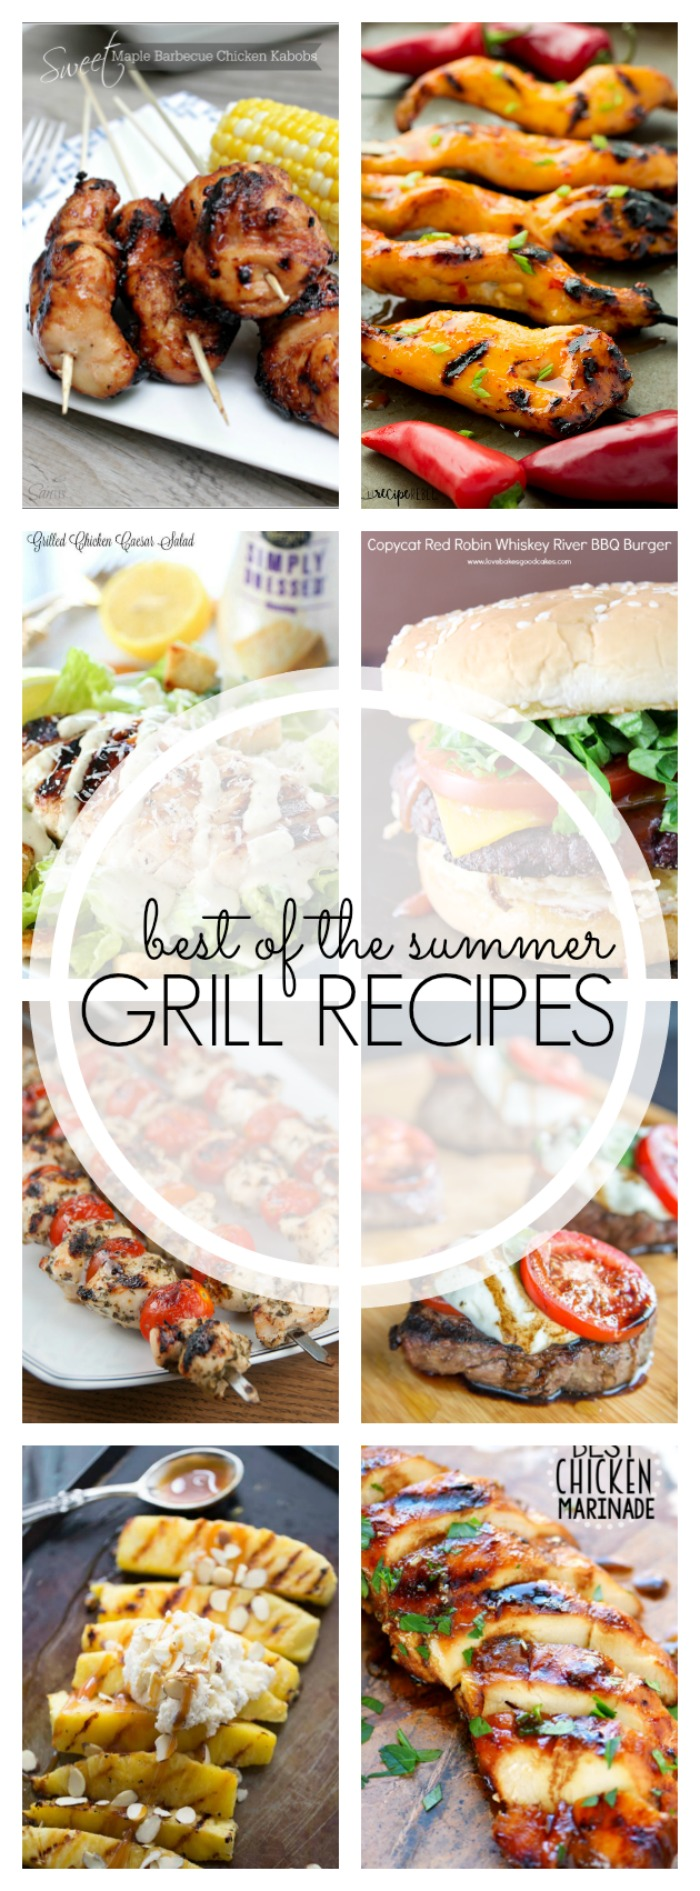 From spiraled hot dogs to chicken skewers and grilled salads to the perfect cheeseburgers, here are some of the best of summer grill recipes!